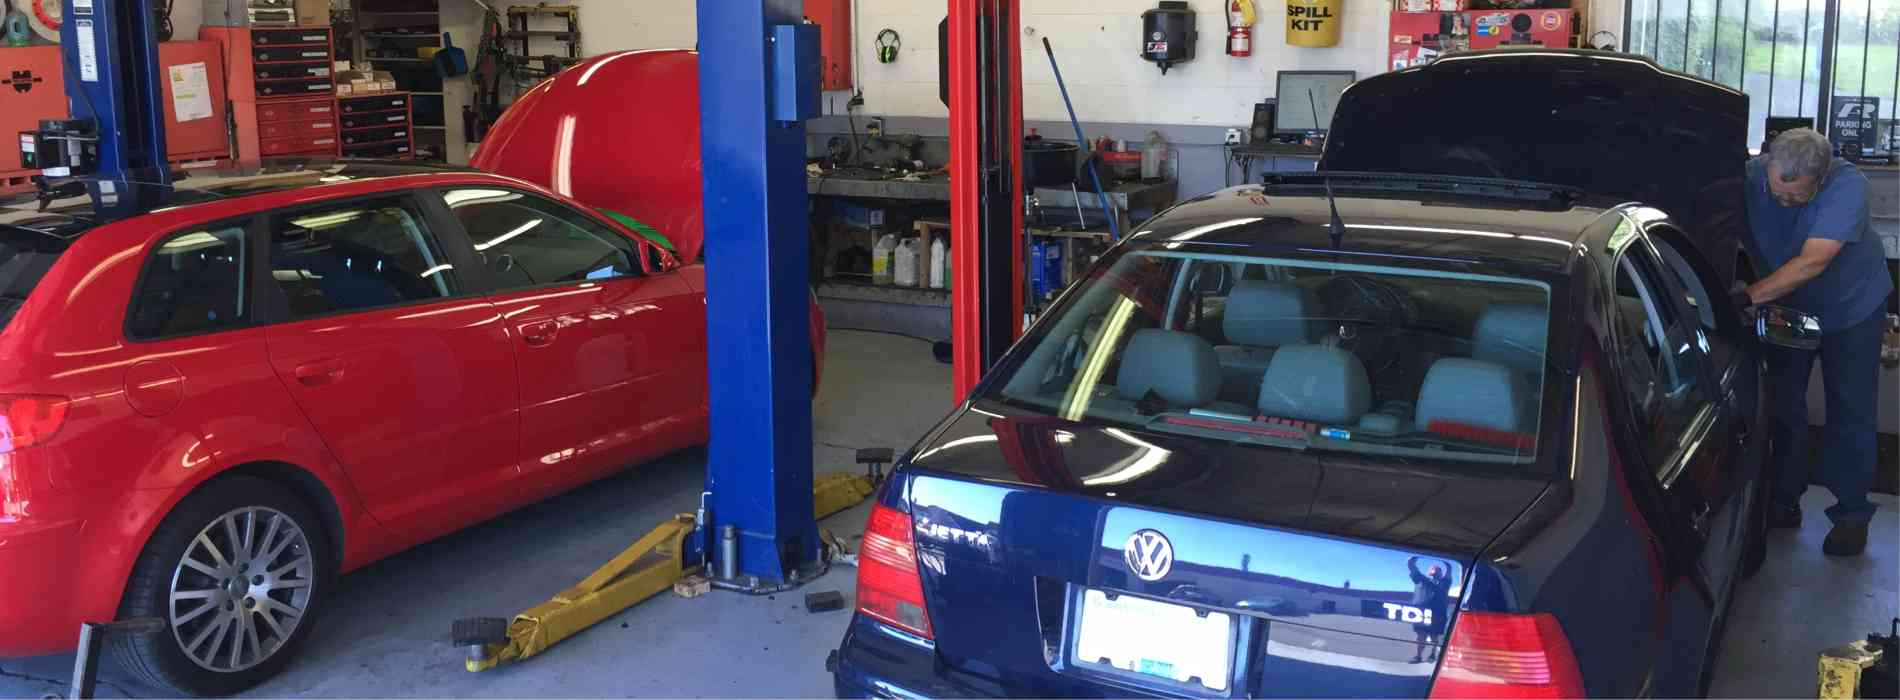 Volkswagon Jetta getting serviced at Autospeil